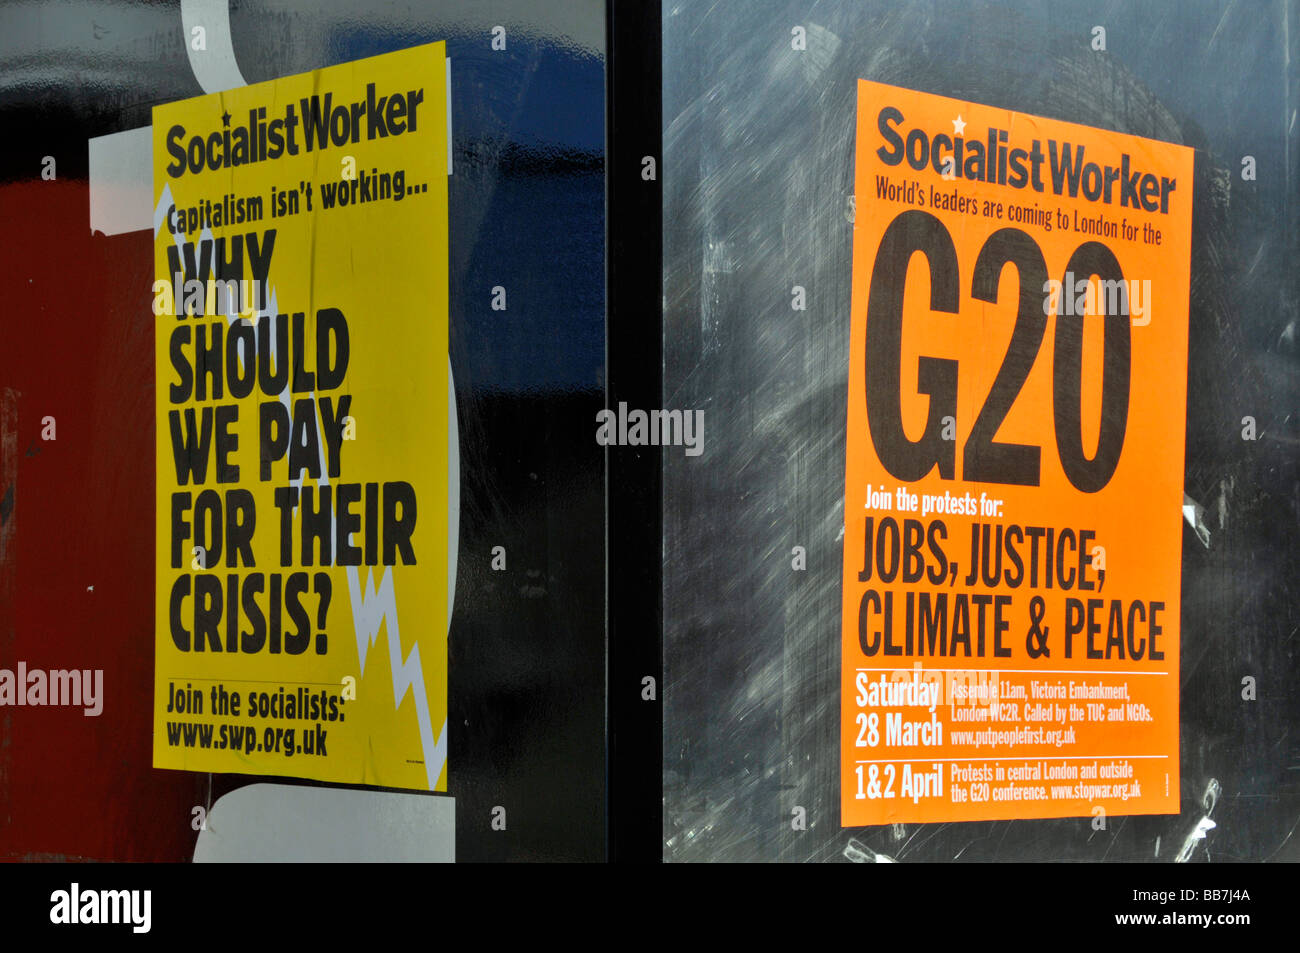 Socialist Worker posters stuck on side of phone box during the G20 summit in London - Stock Image